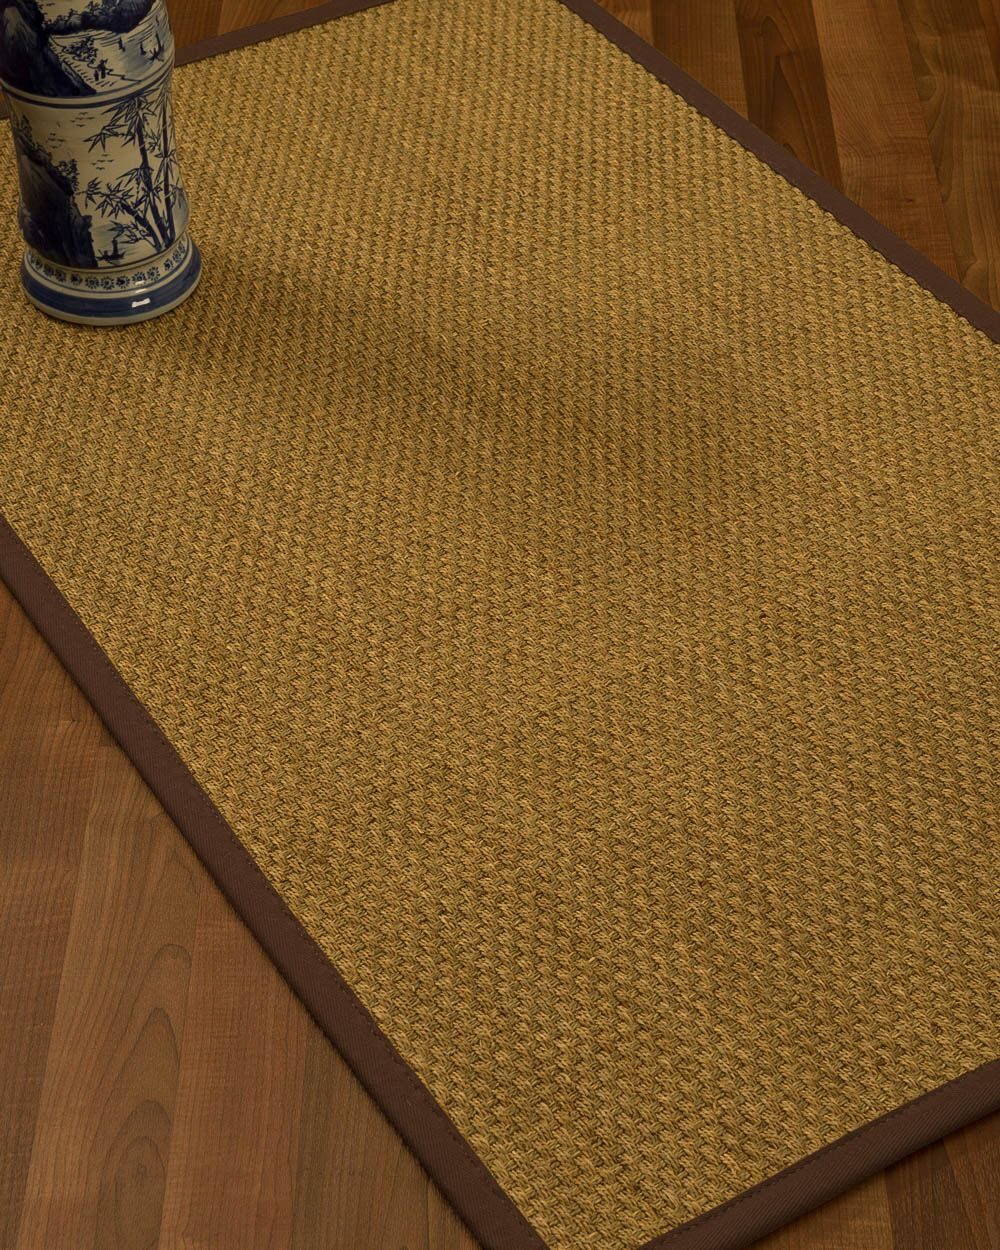 Rosabel Border Hand-Woven Beige/Brown Area Rug Rug Pad Included: No, Rug Size: Rectangle 3' x 5'